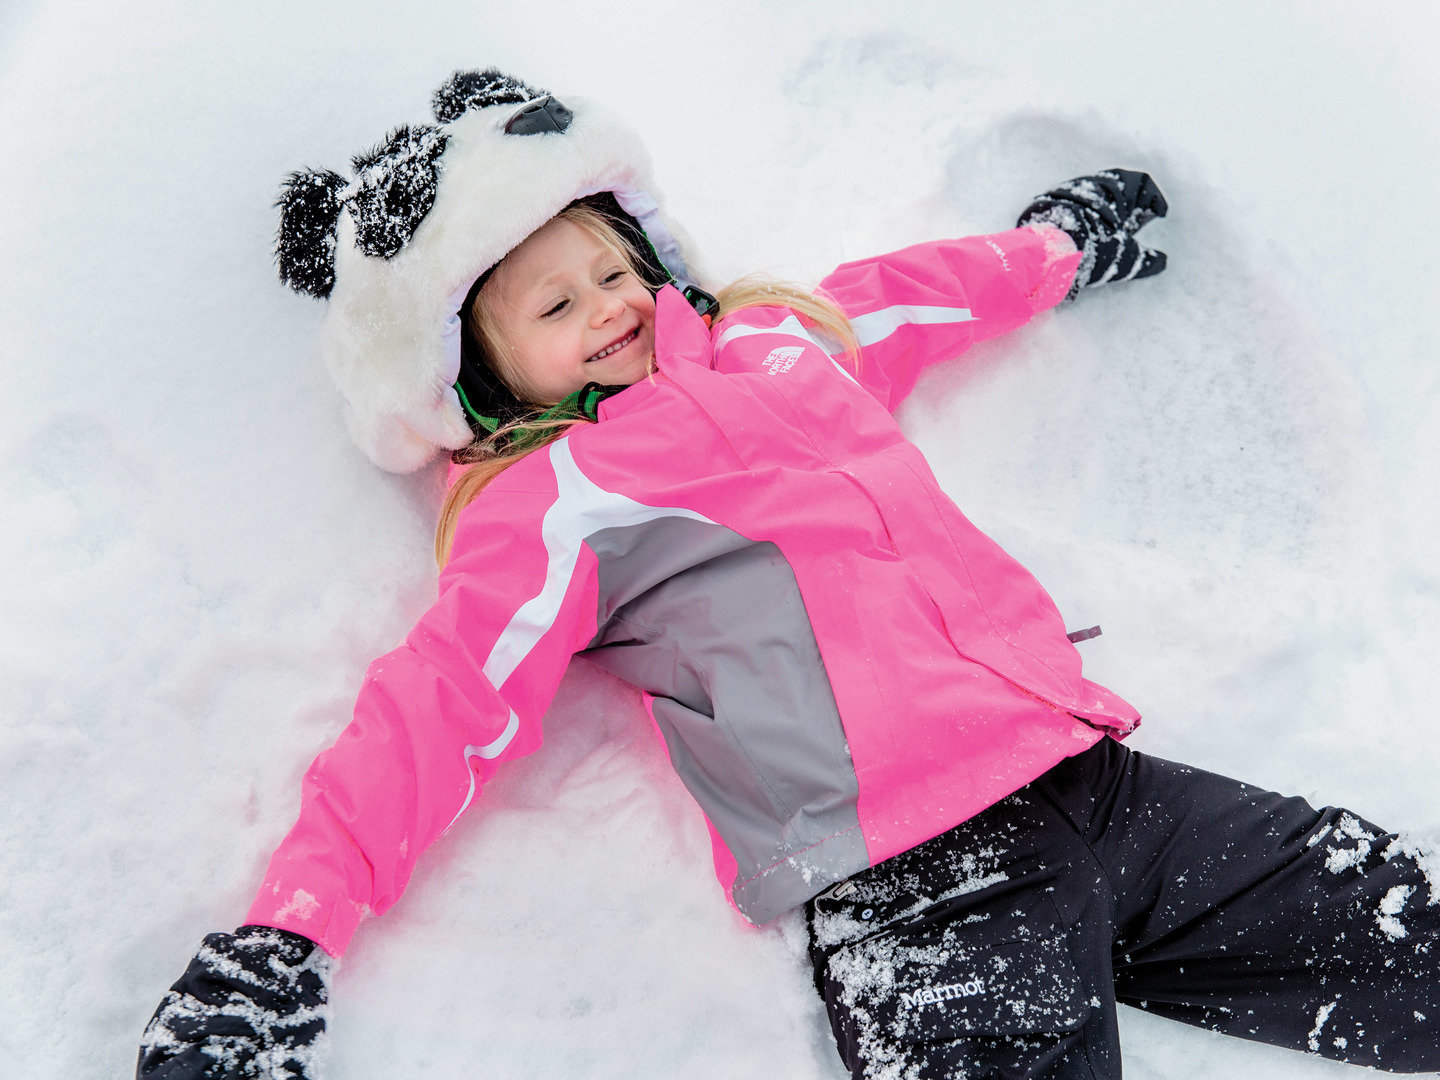 Marriott's MountainSide Snow Angels. Marriott's MountainSide is located in Park City, Utah United States.